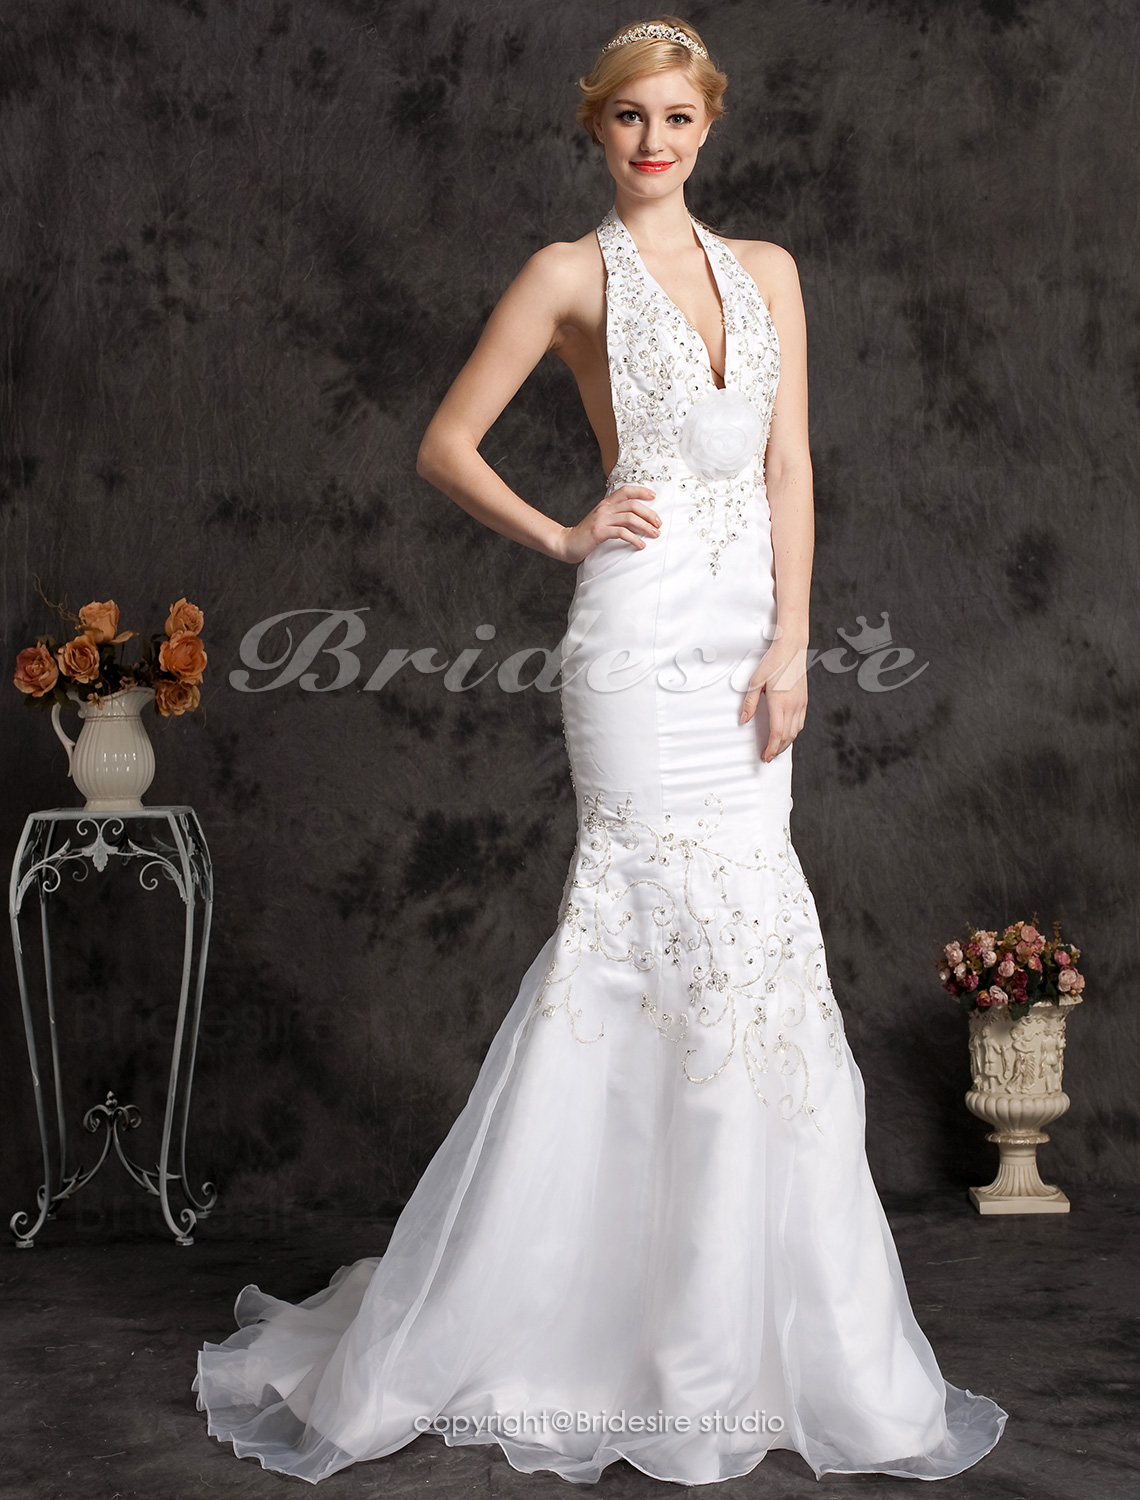 Mermaid/ Trumpet Satin Organza Court Train Halter Wedding Dress